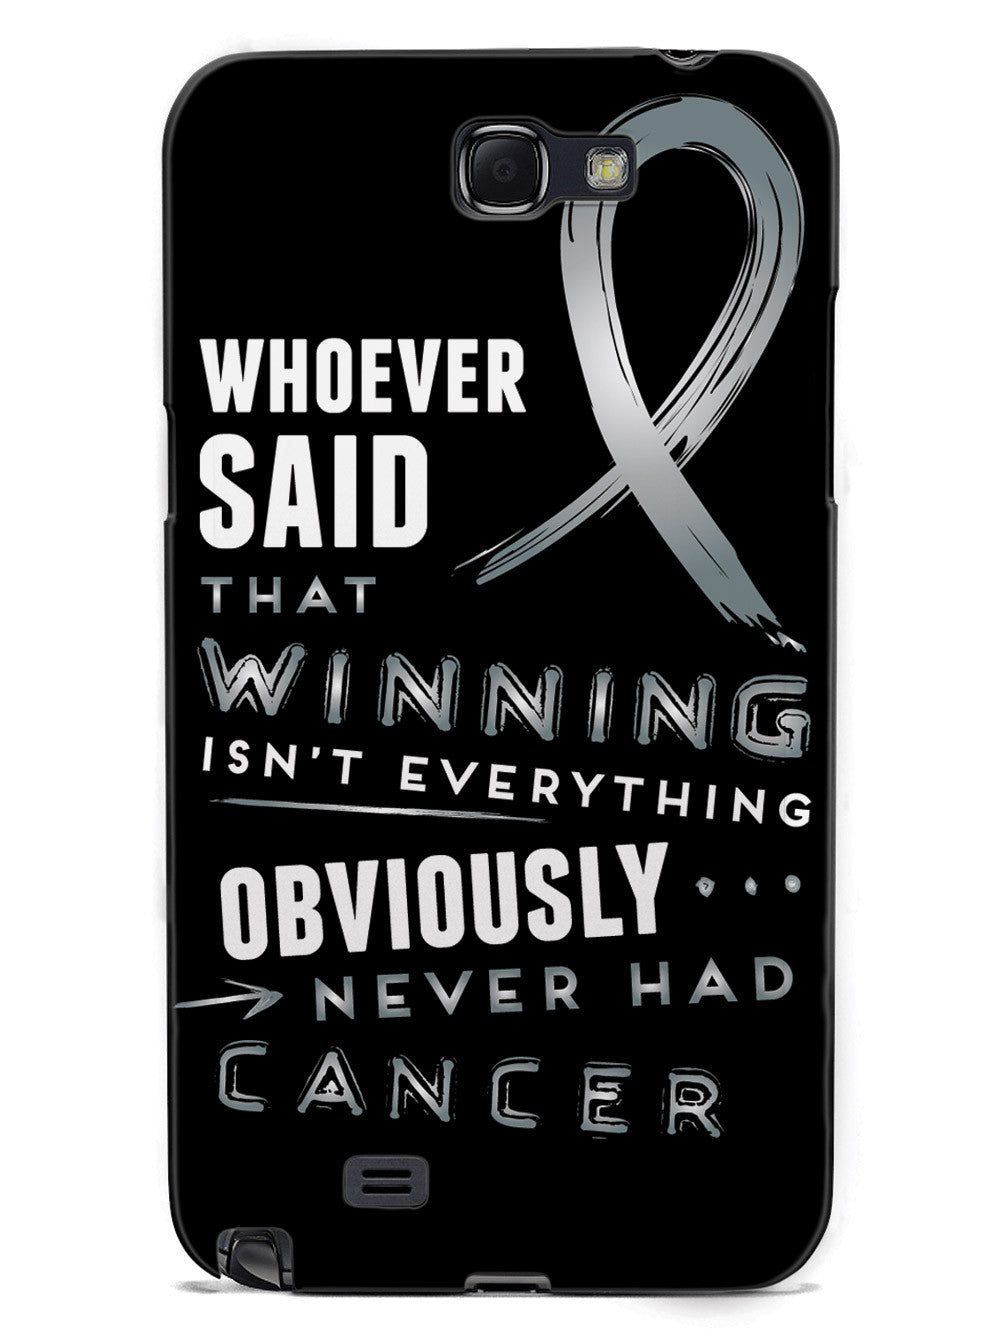 Winning is Everything - Cancer Awareness Gray Case